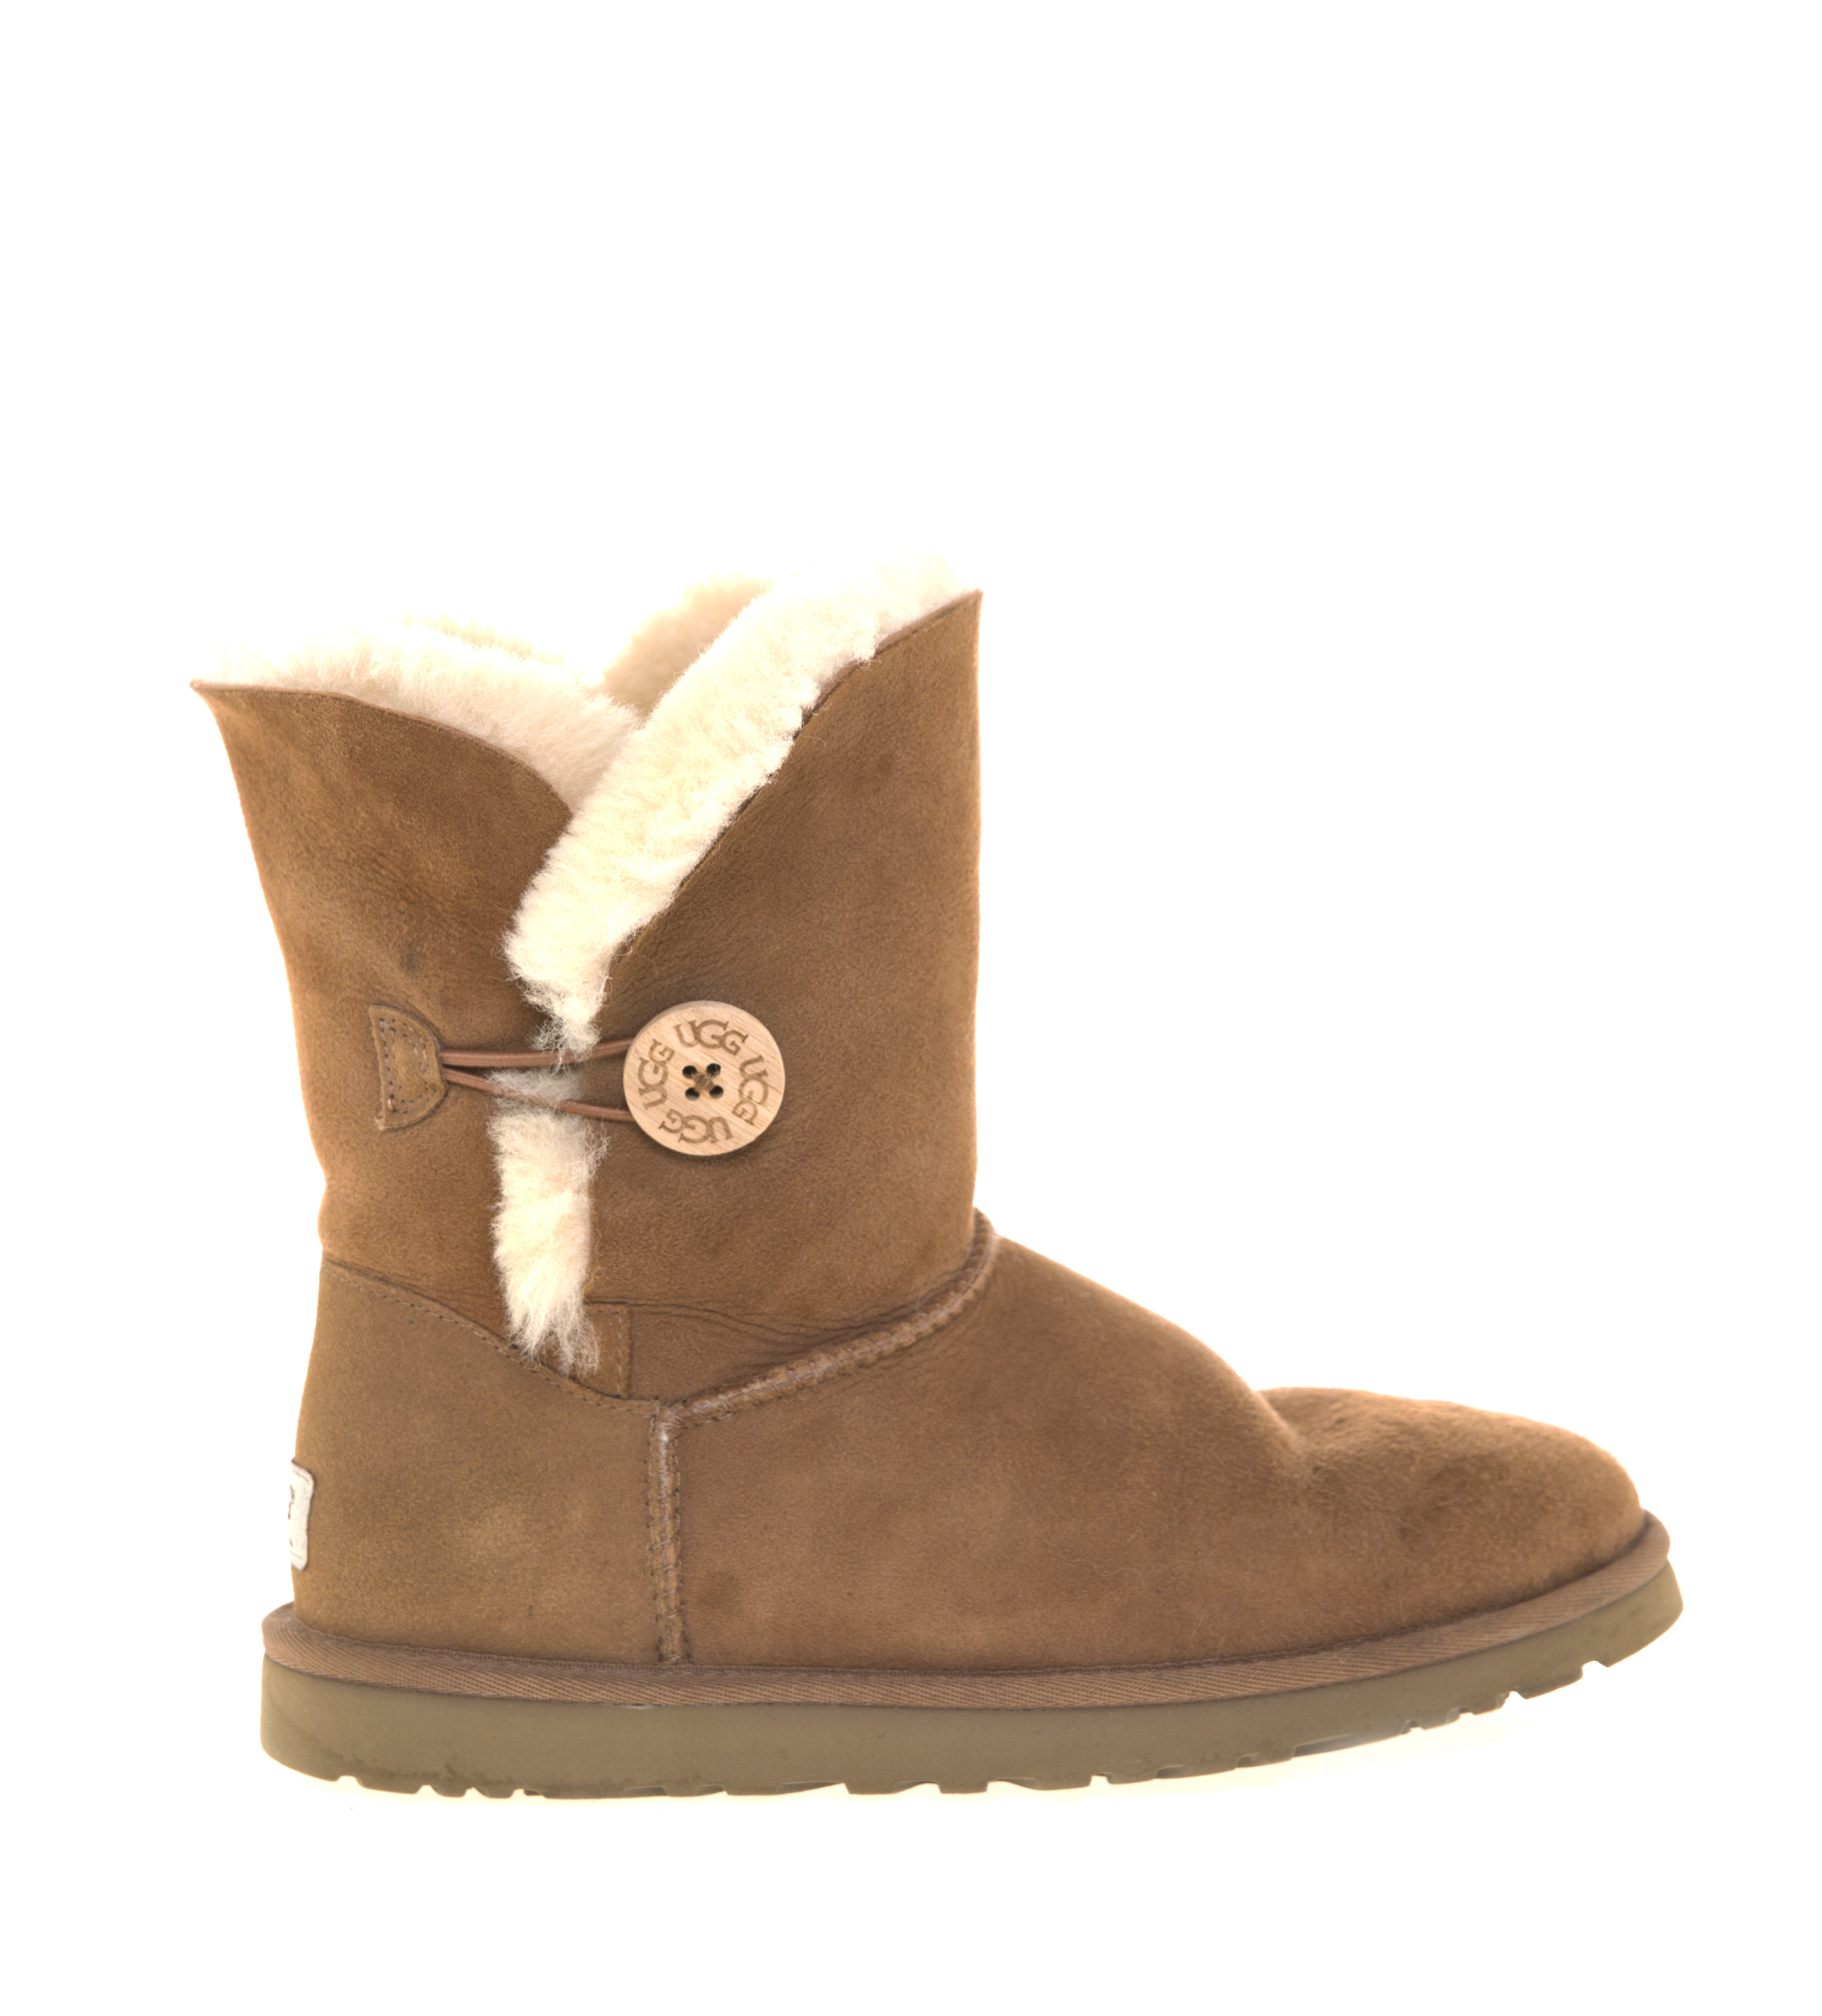 used ugg boots size 8